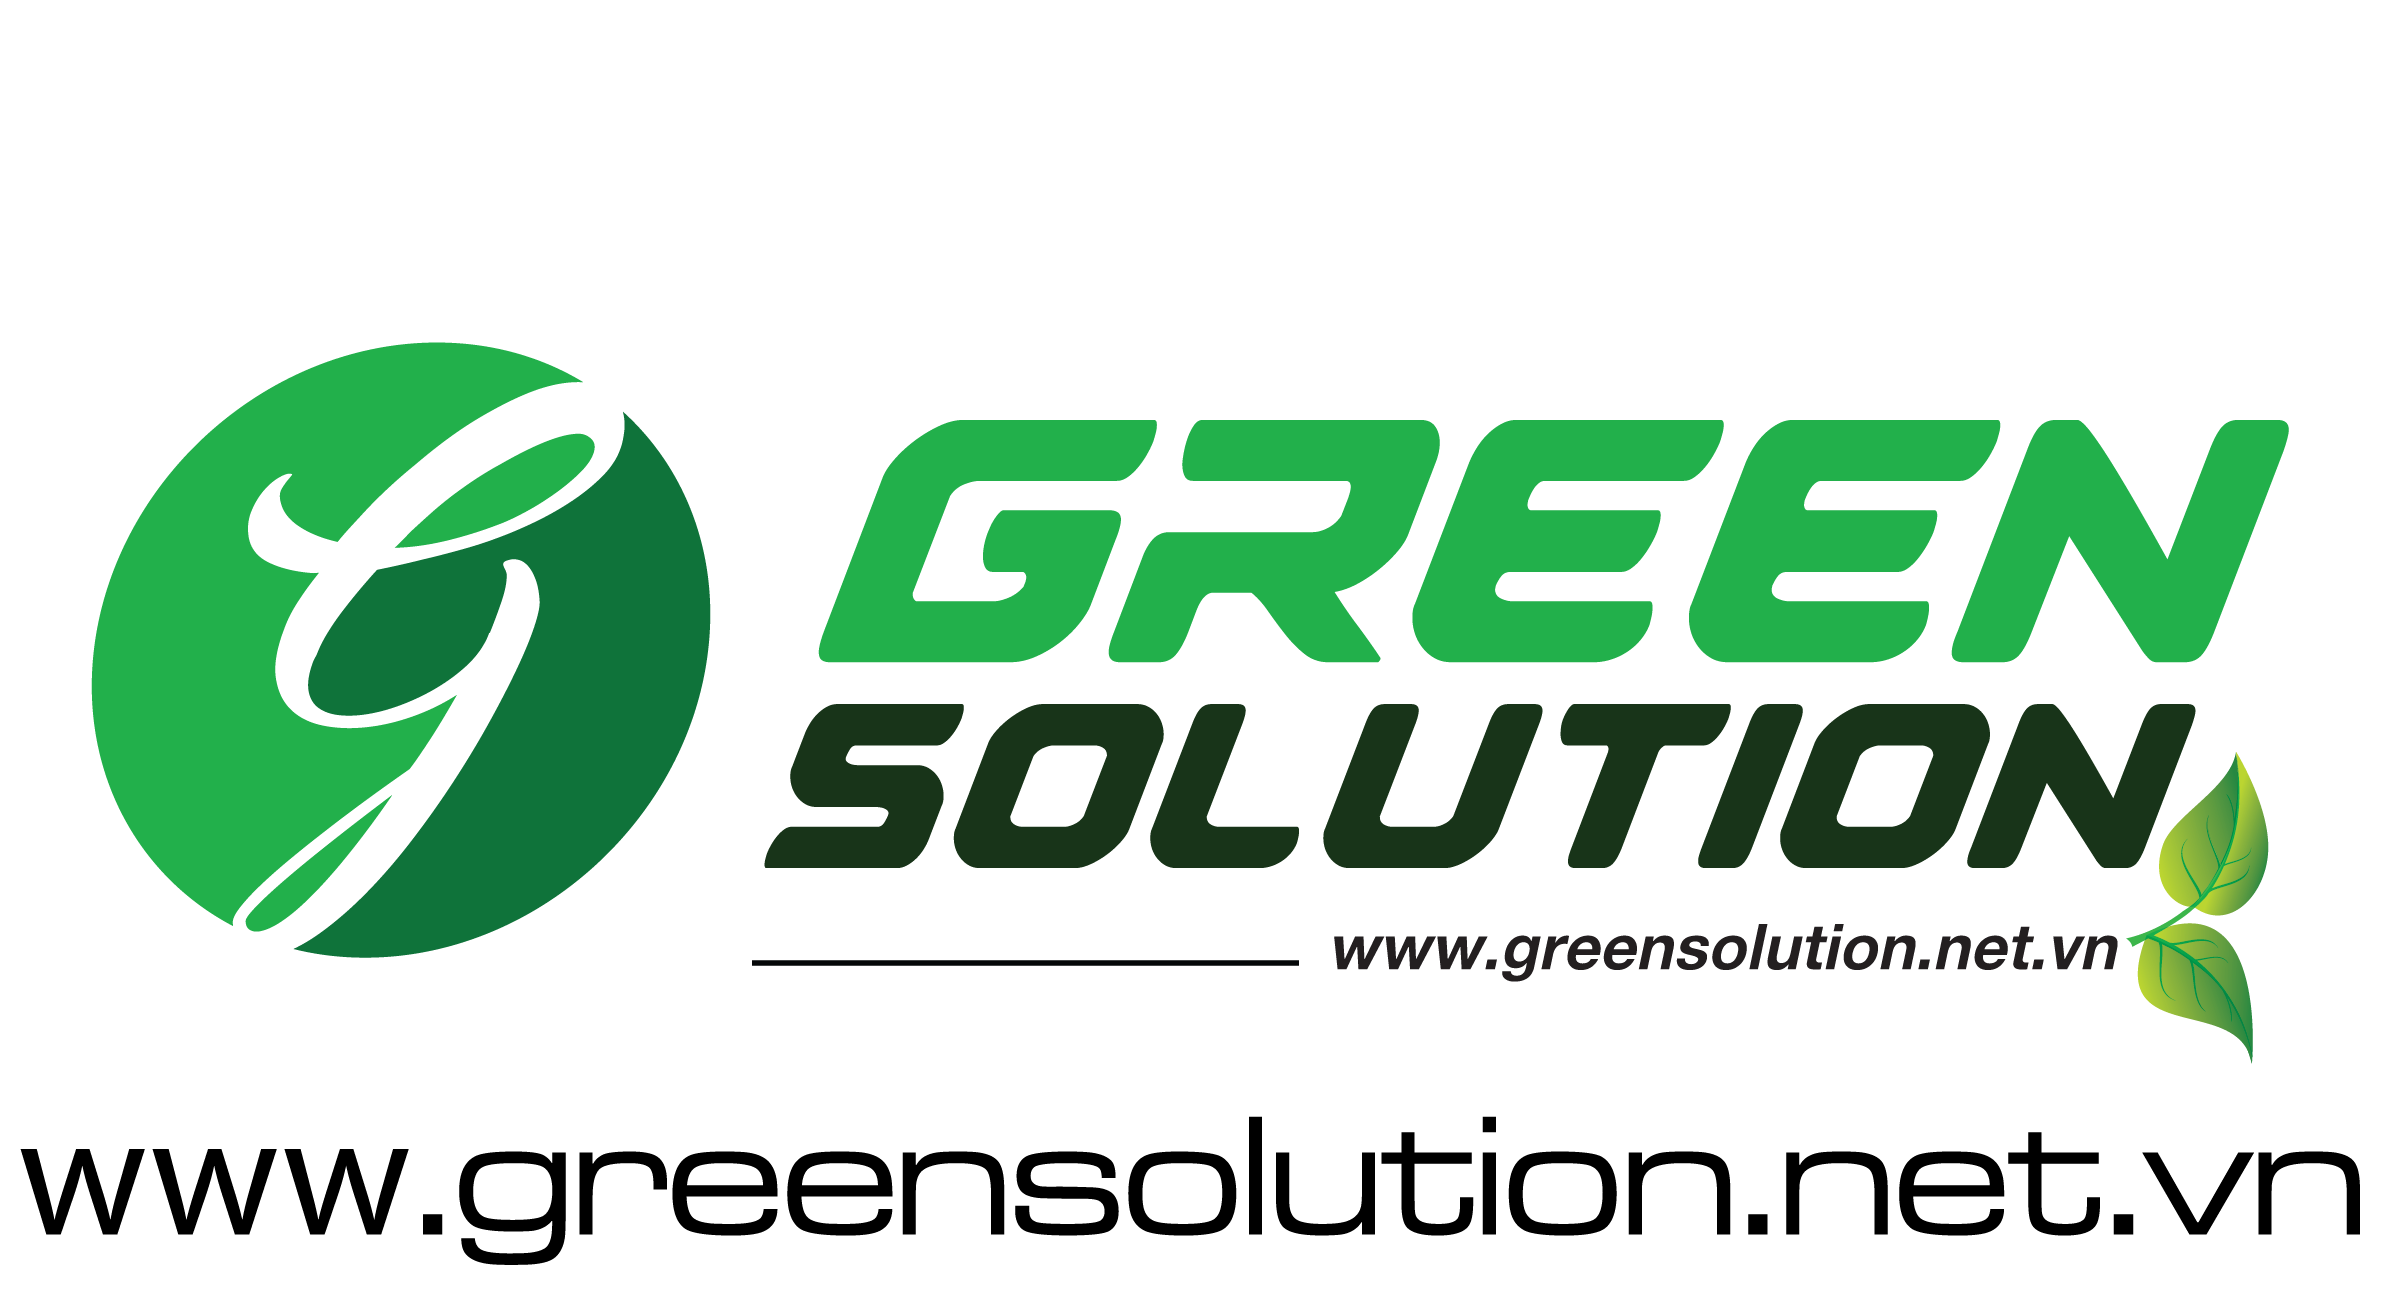 GreenSolution